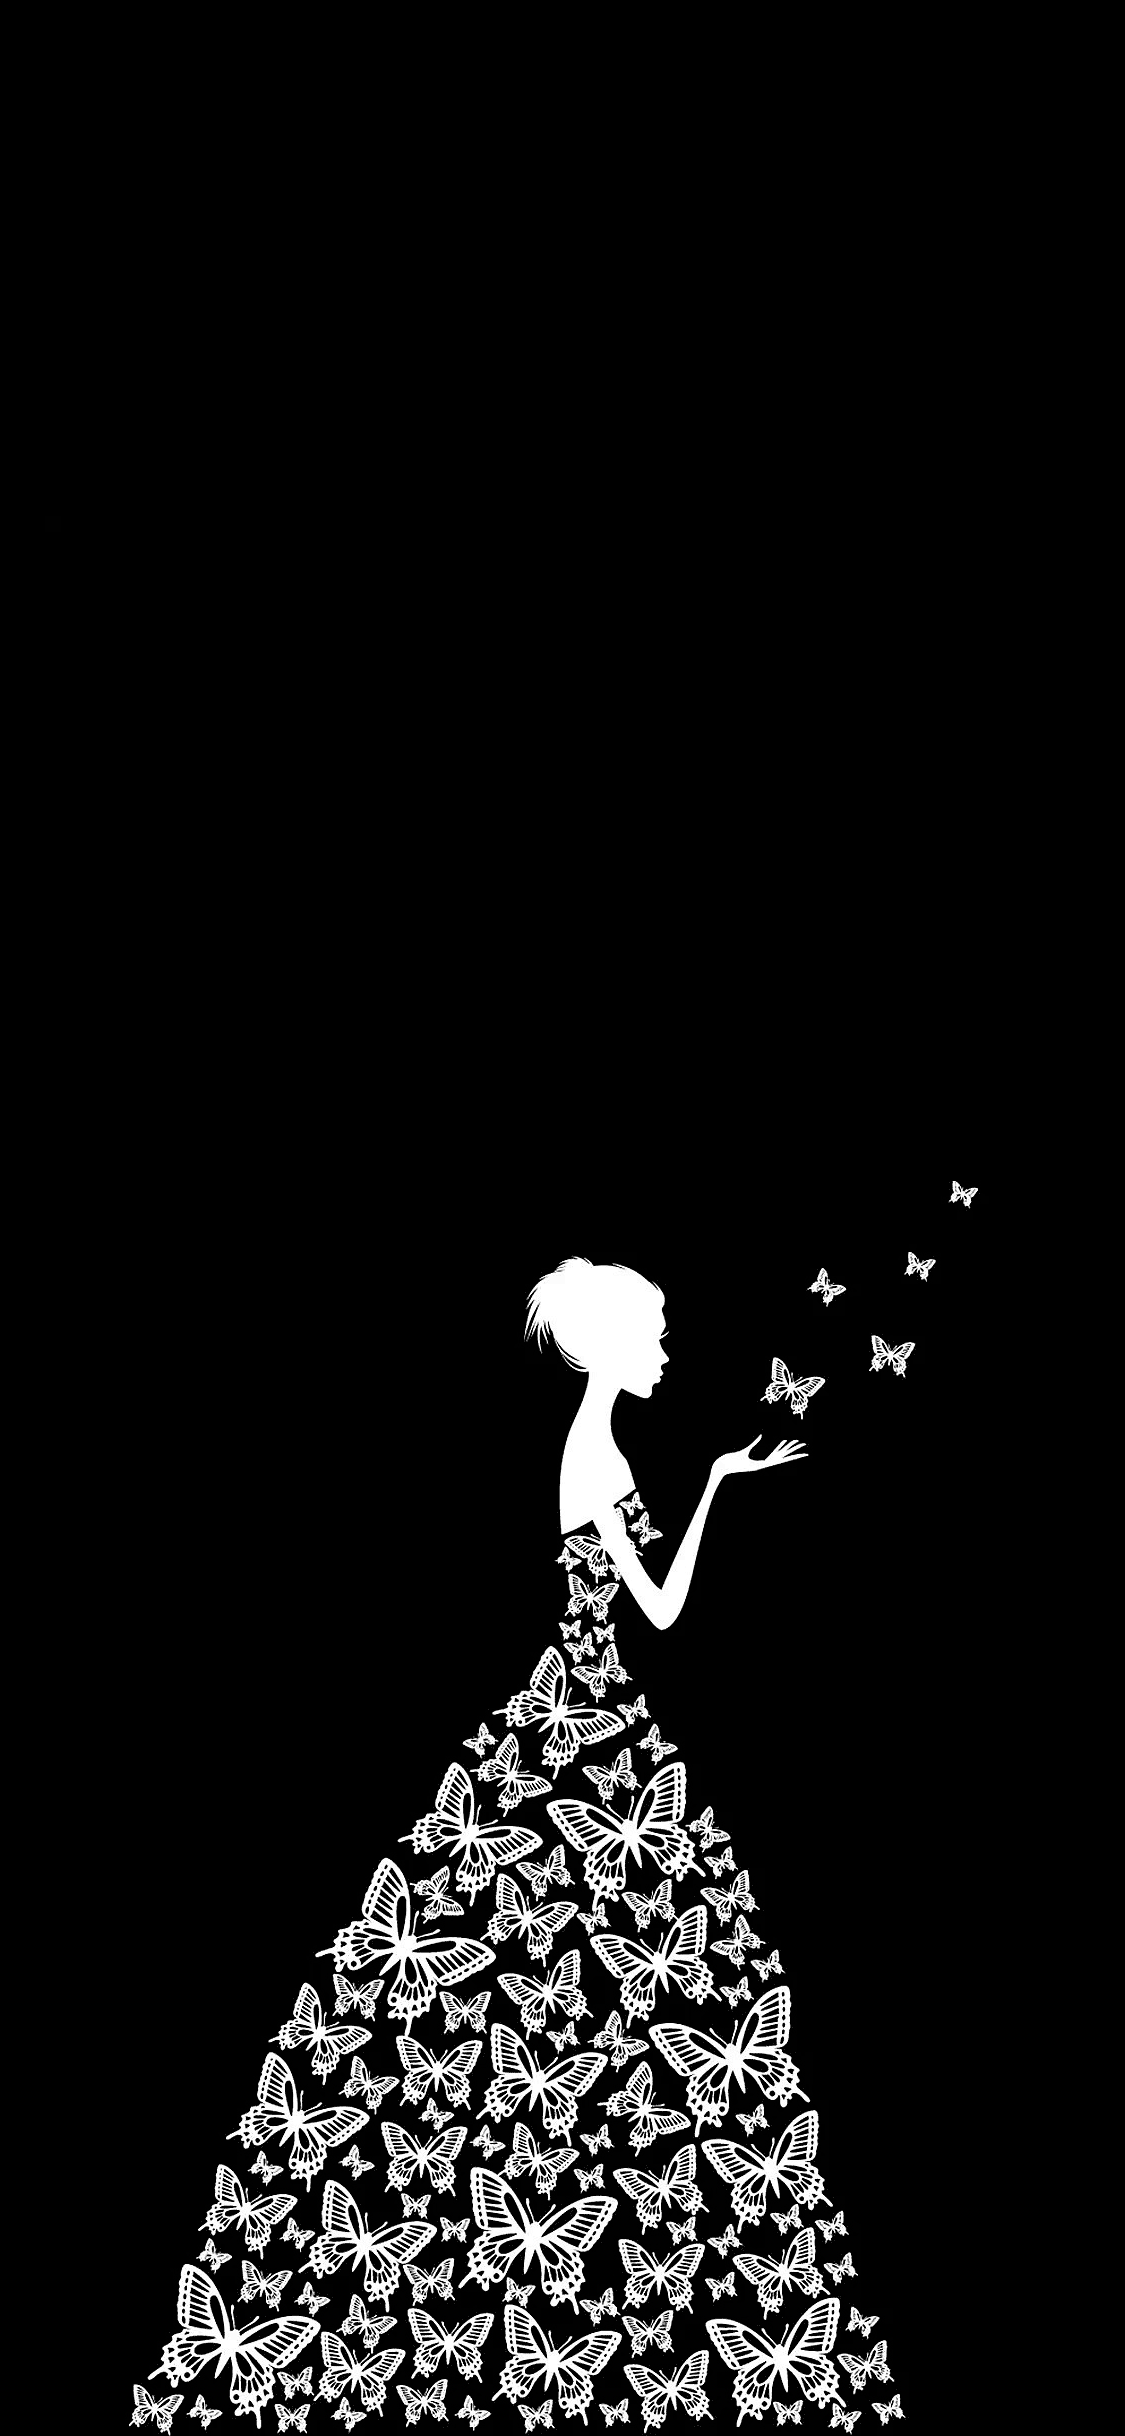 Butterfly Dress Iphone X Cute black wallpaper, Butterfly